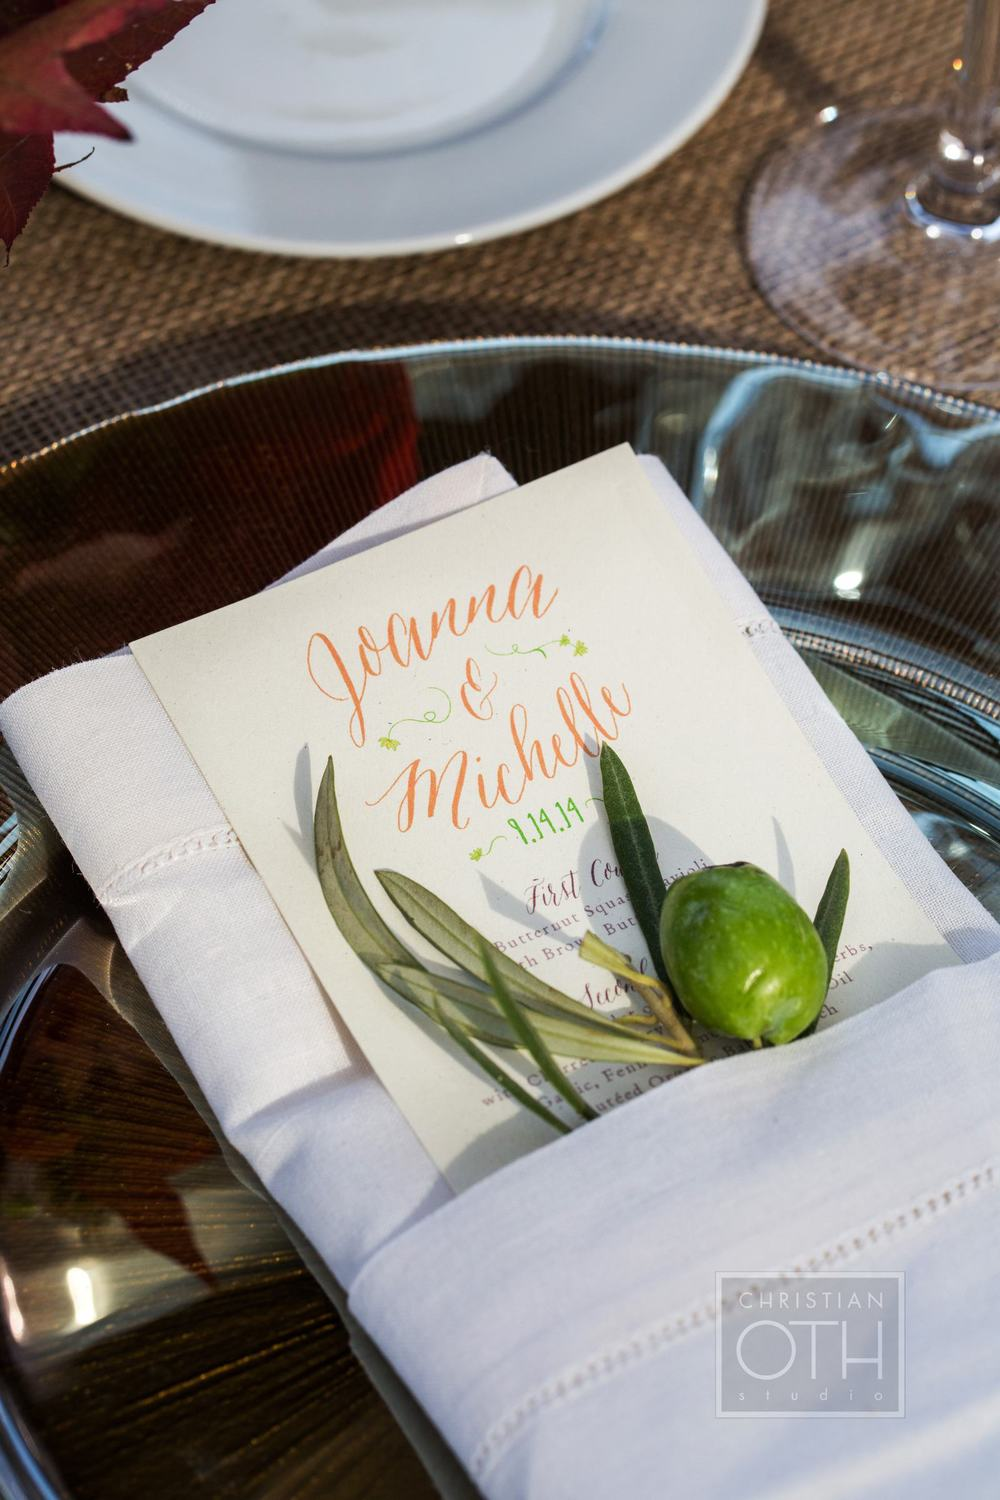 Other day of pieces include a menu cut to fit inside a folded napkin and simple flat place cards which were pinned to olive branches for display.